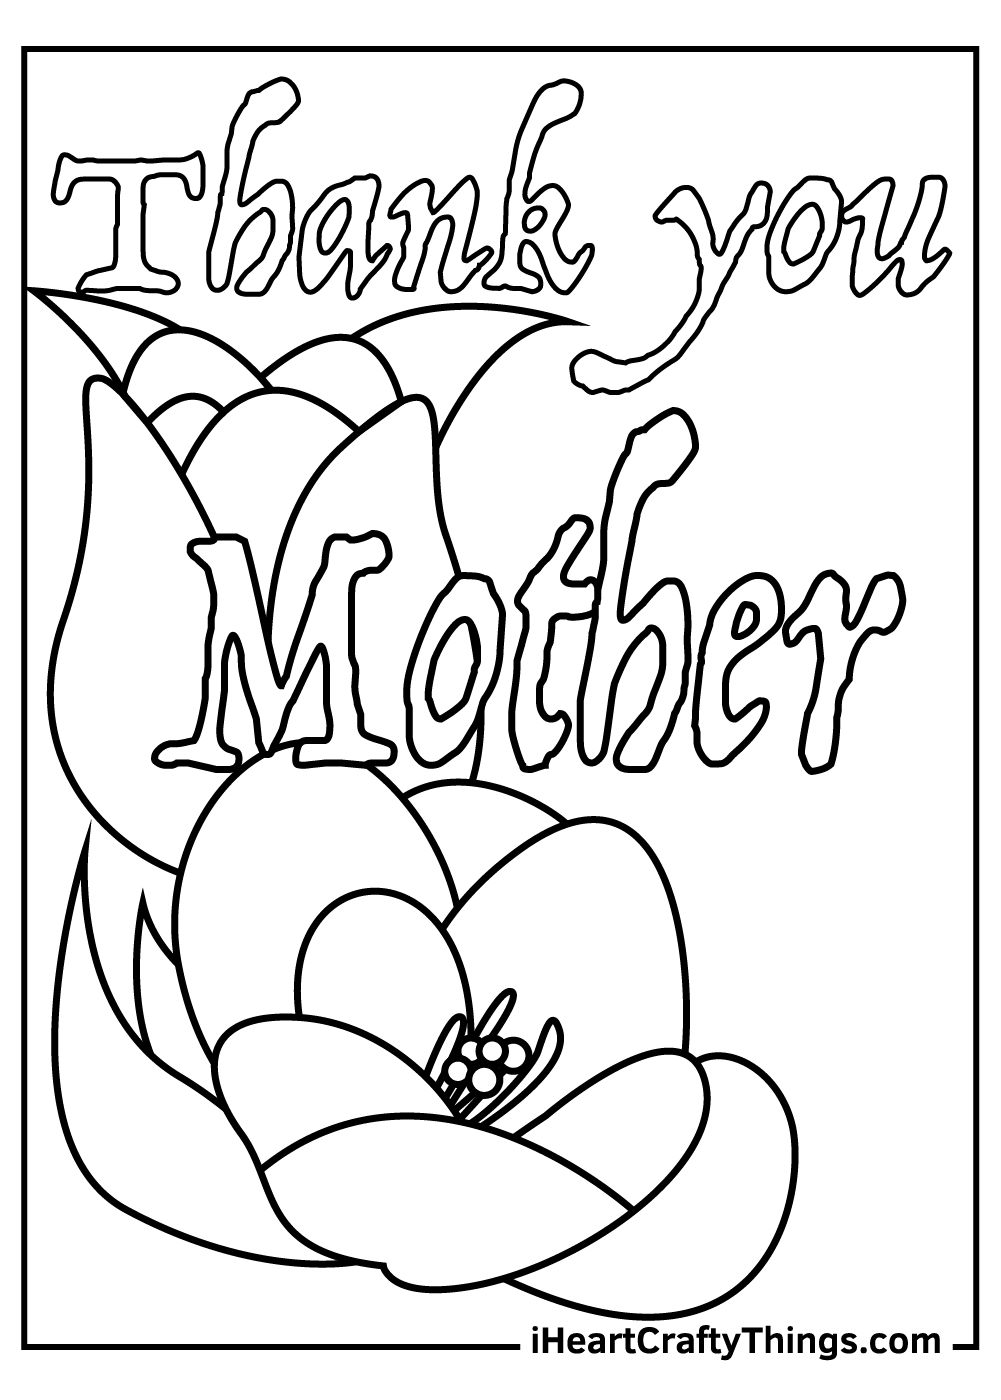 Thank you mother coloring pages printable